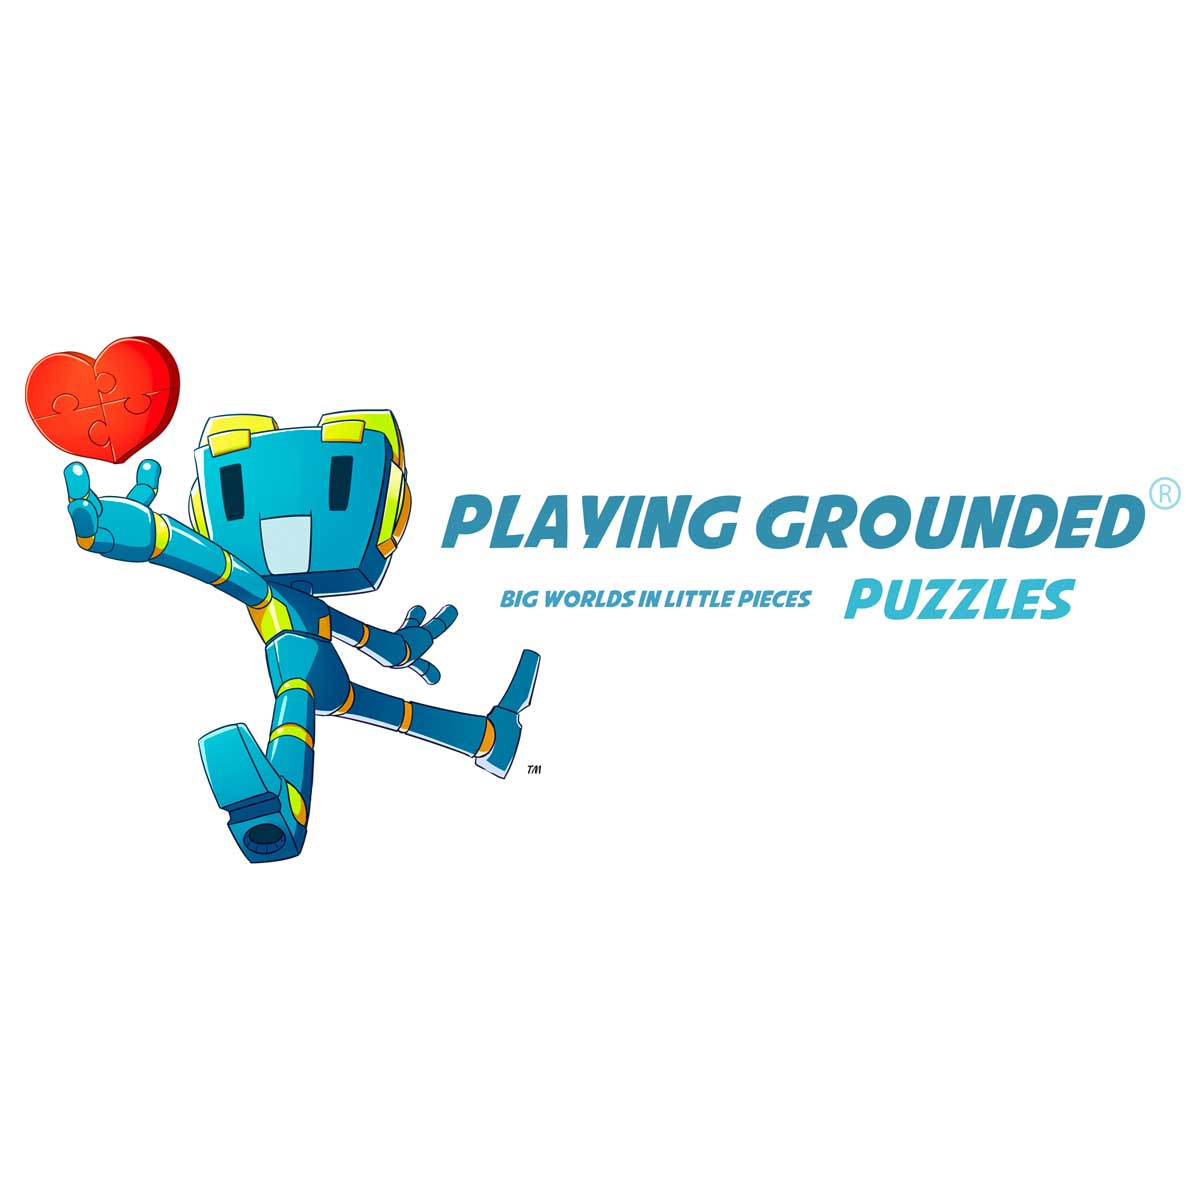 PLAYING GROUNDED